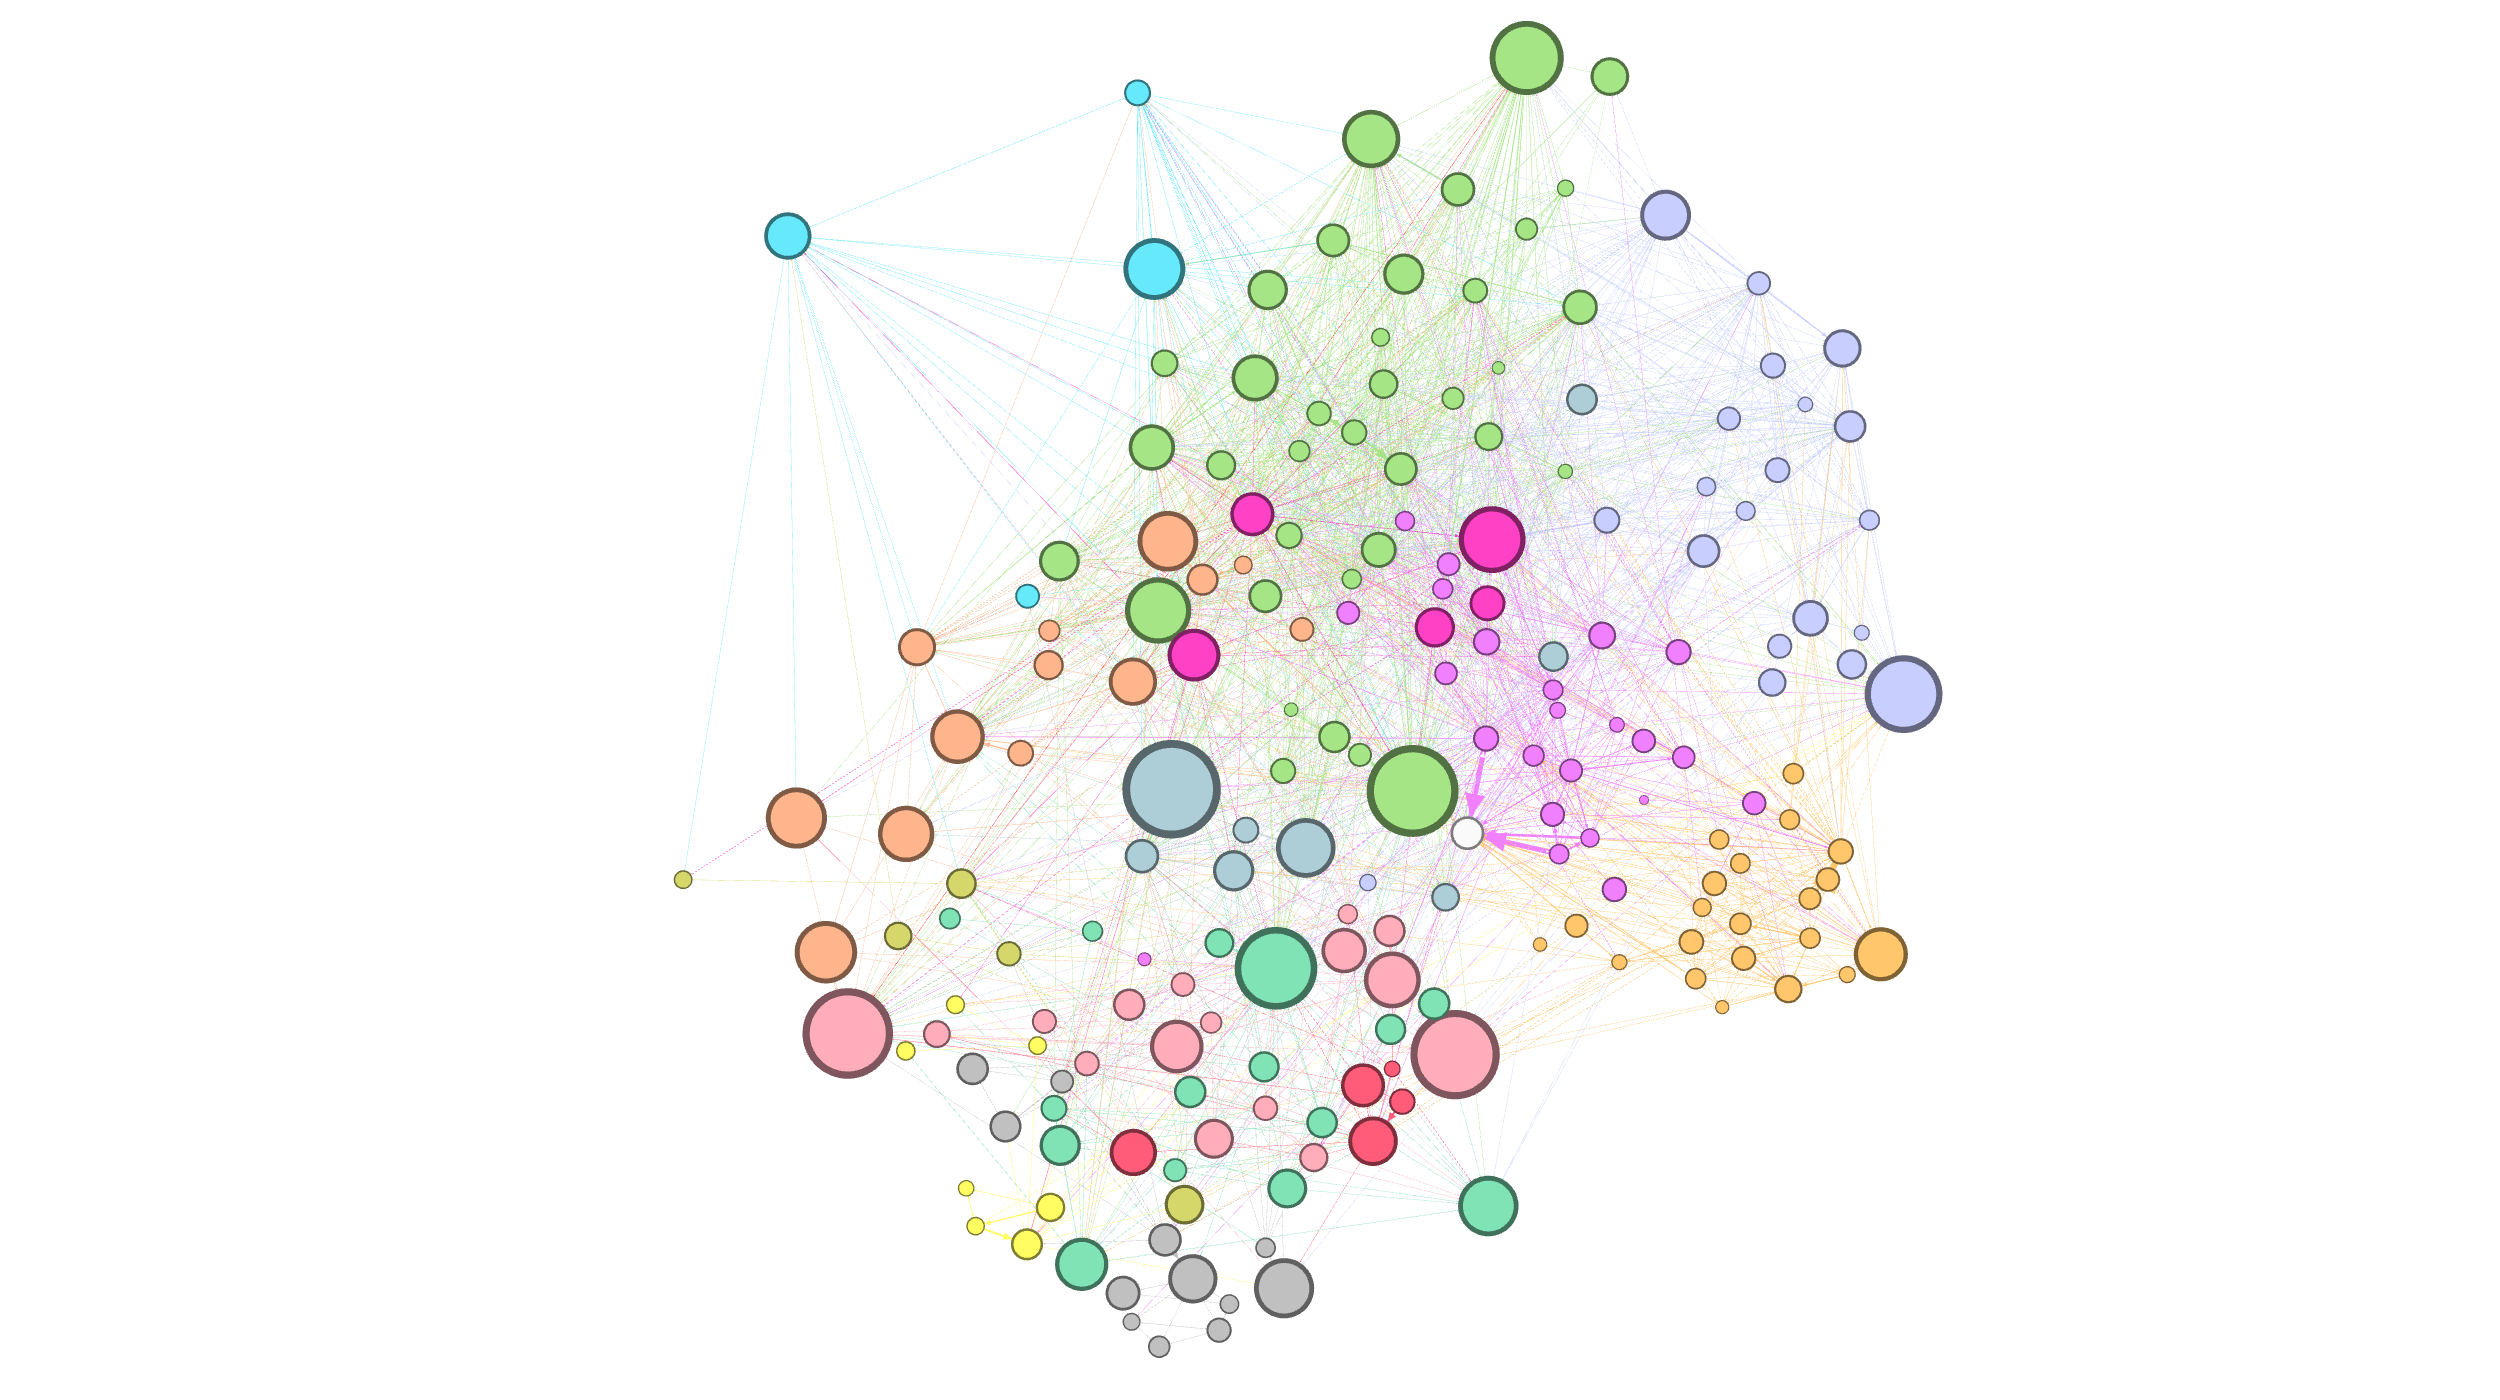 umair-akbar-1*jRYLY1xArBmH c04Z6iqKA - A Graph-based approach to community detection in Twitter Networks